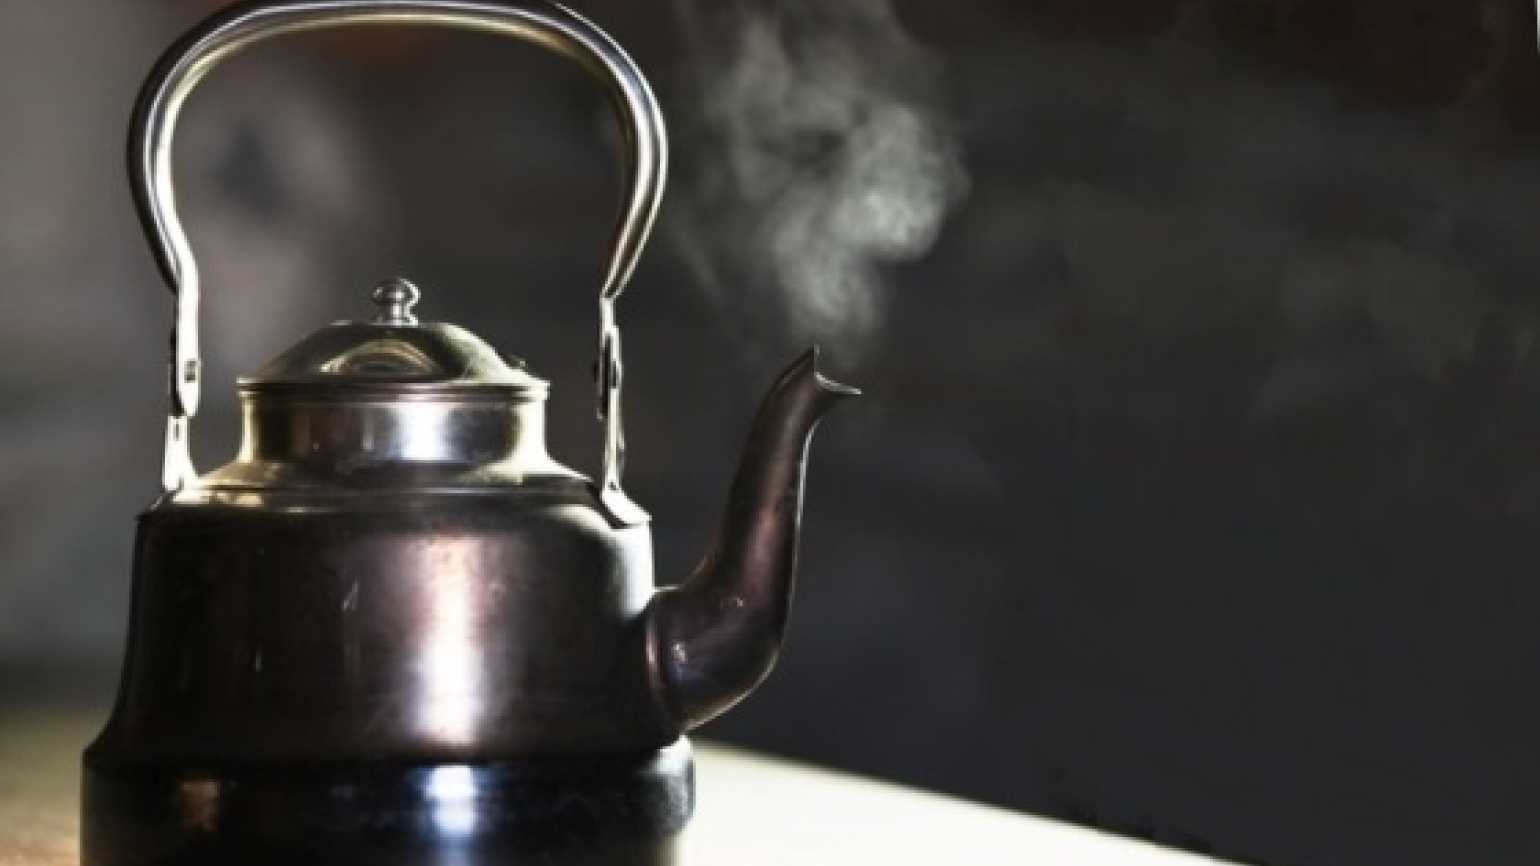 steam rising from a boiling tea kettle